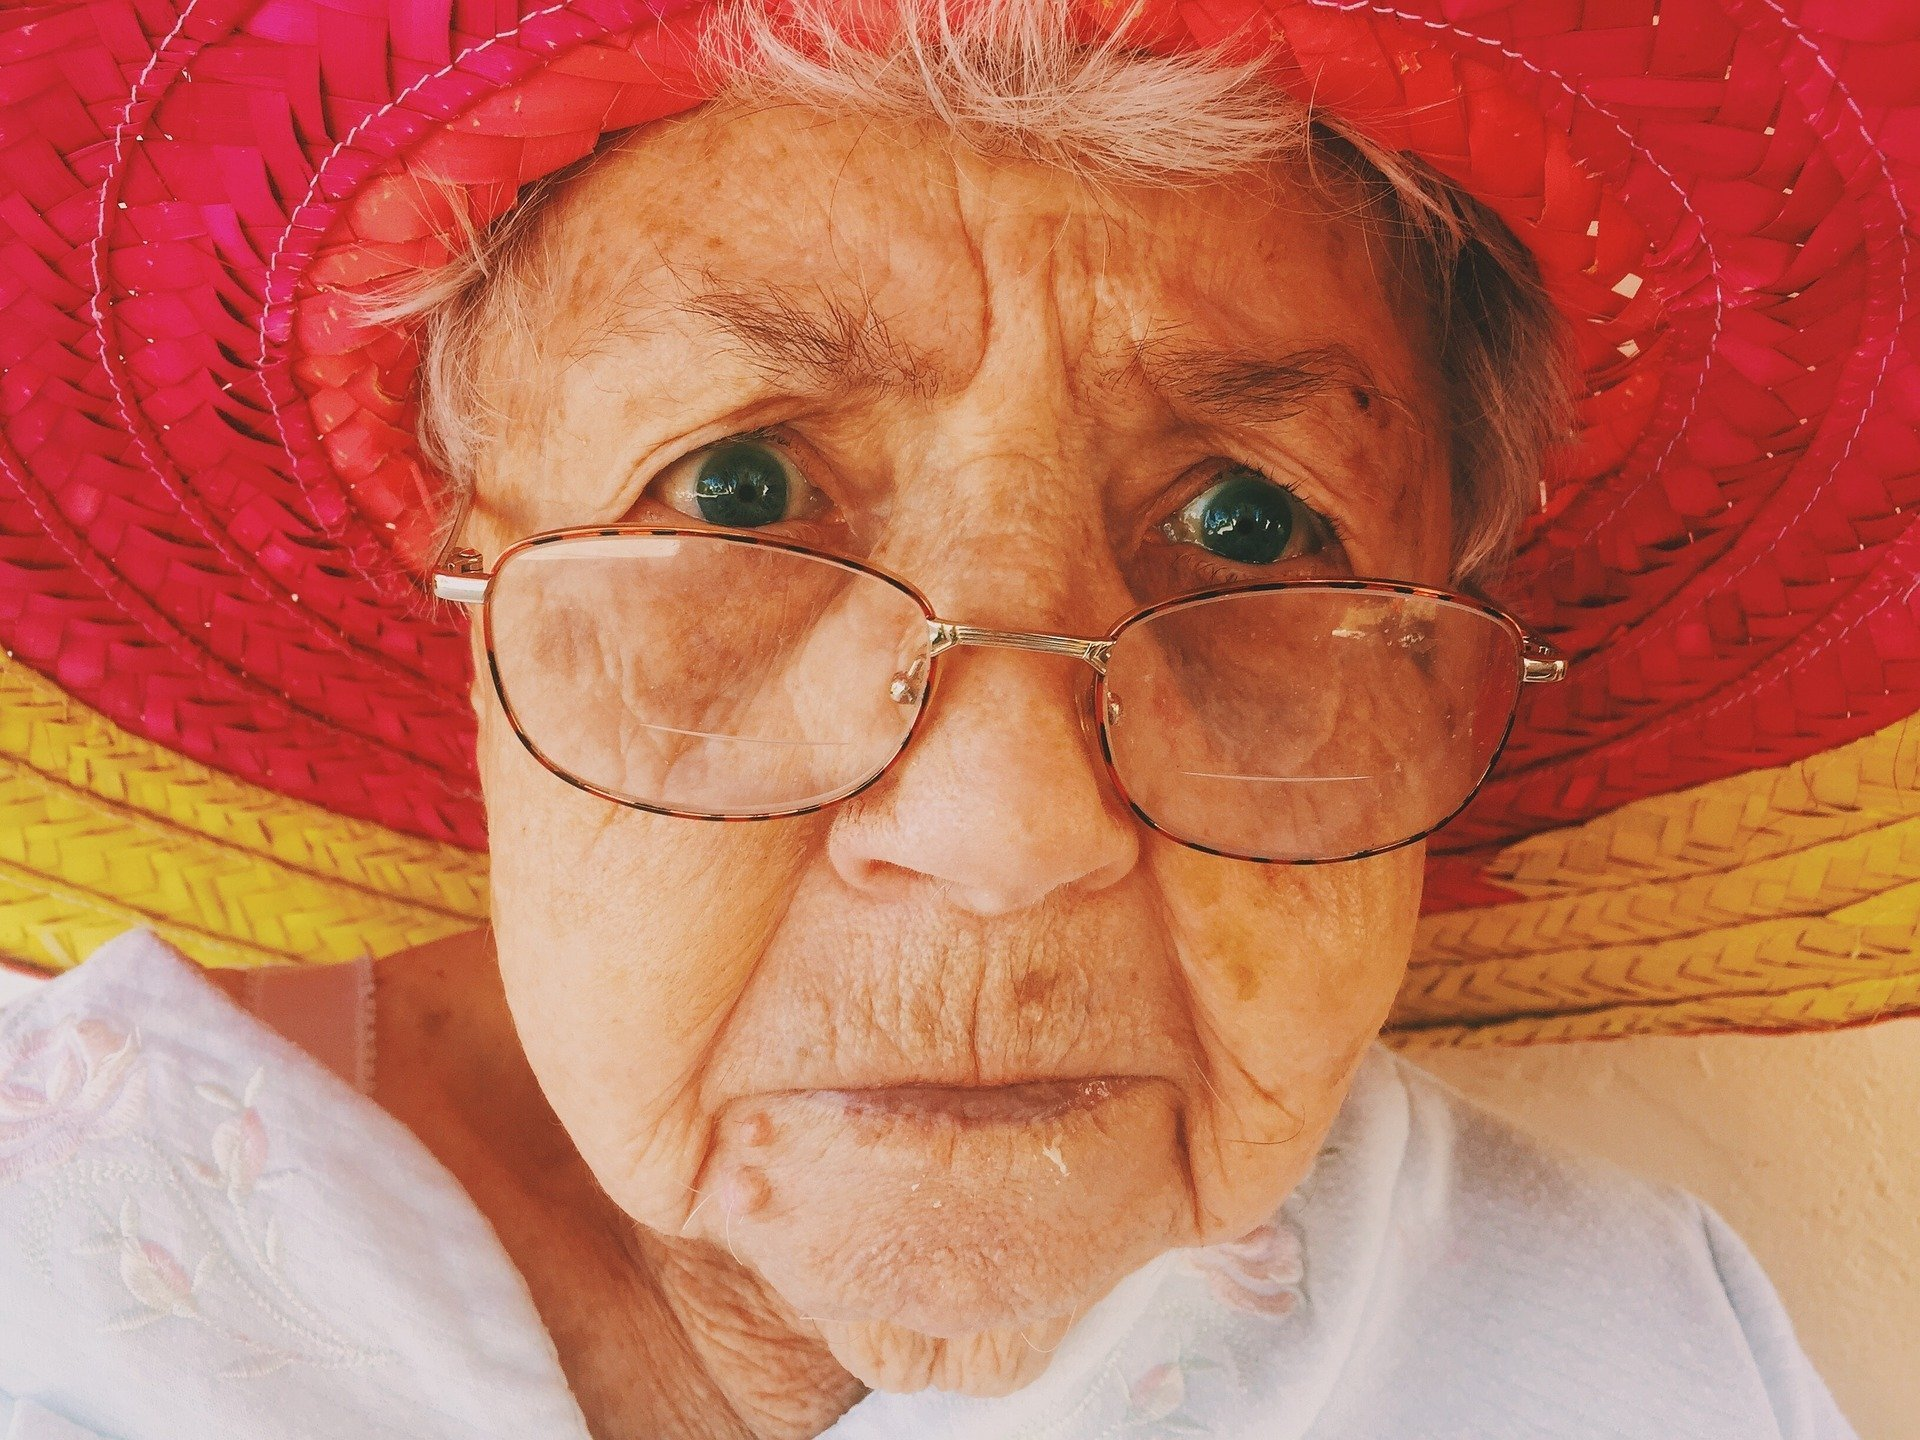 Old woman in glasses and a hat.   Source: Pixabay